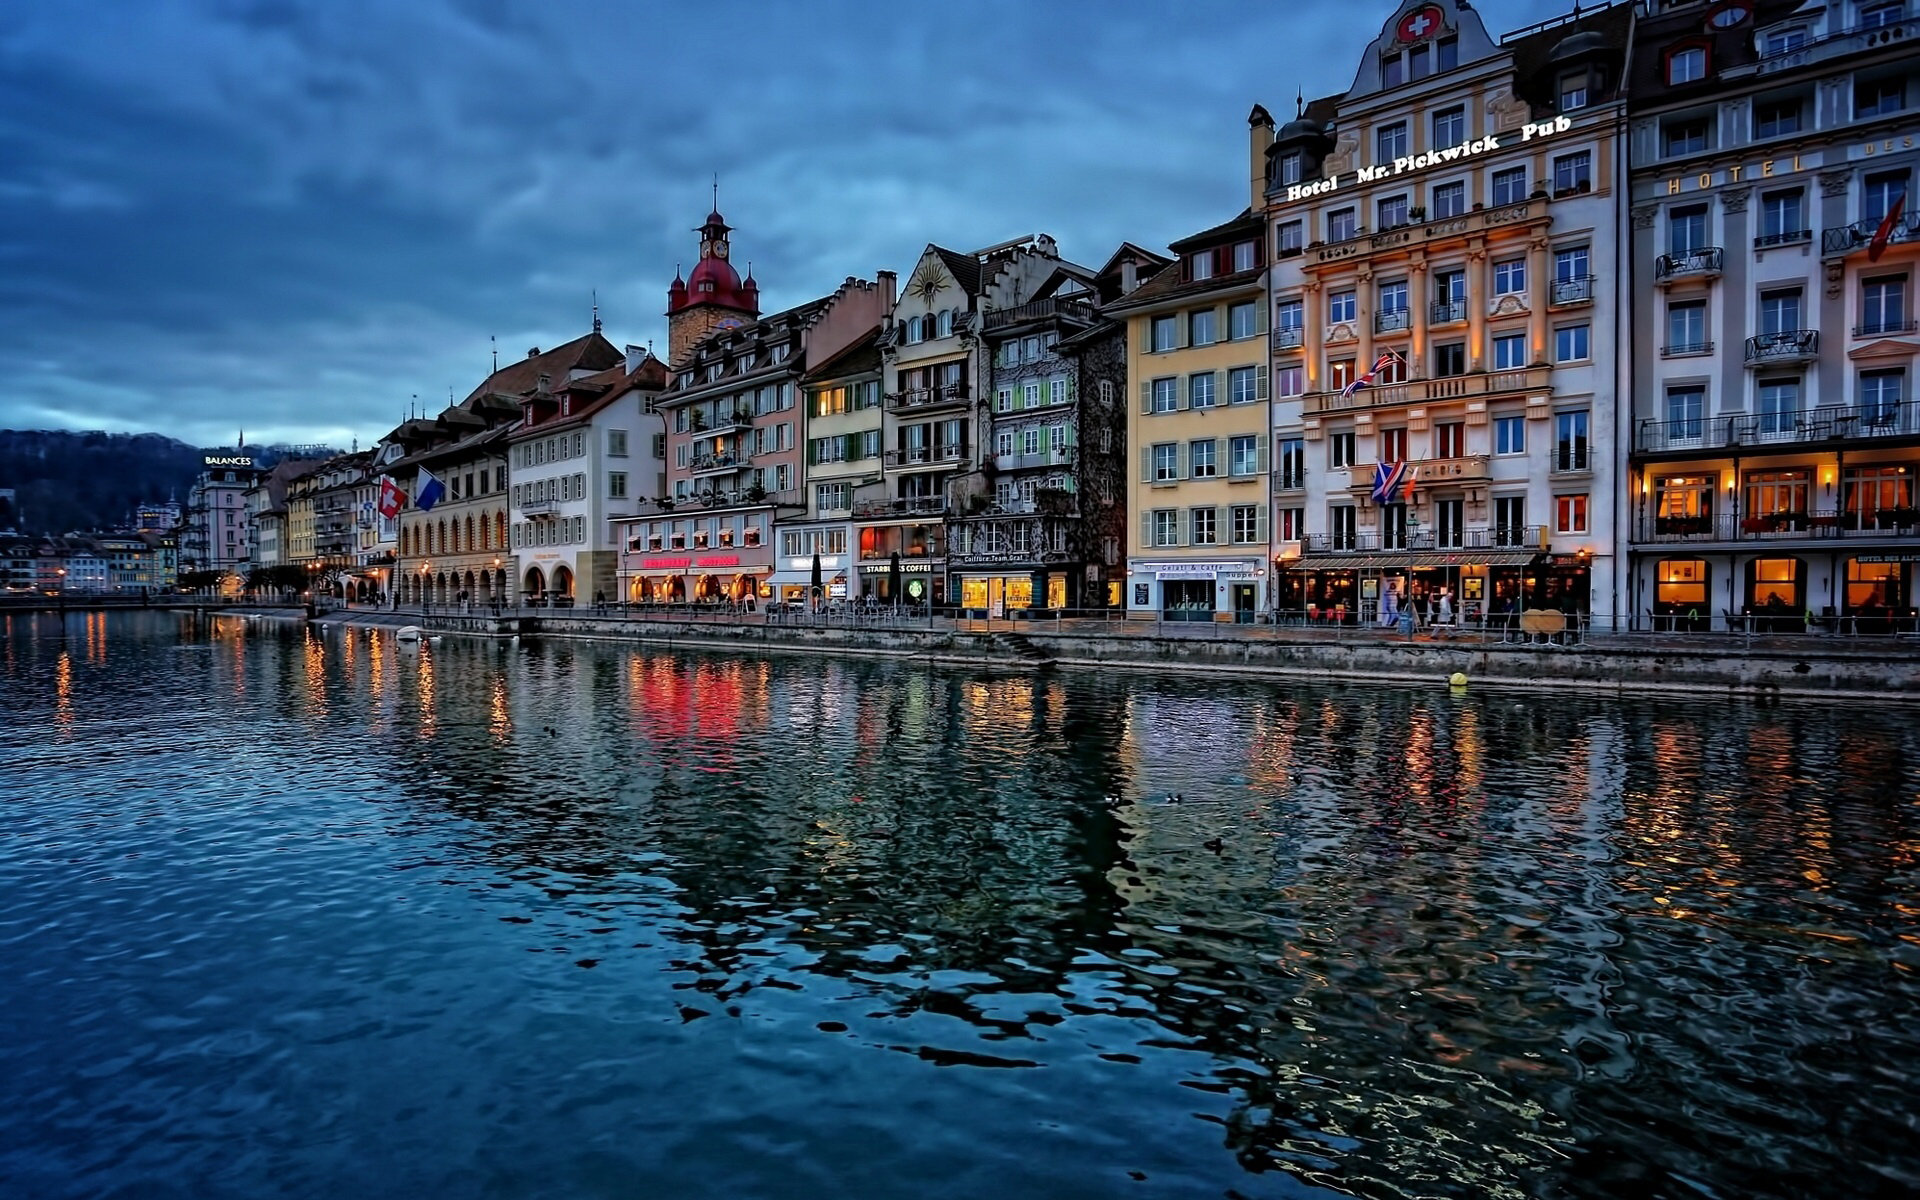 lucerne, switzerland full hd wallpaper and background image